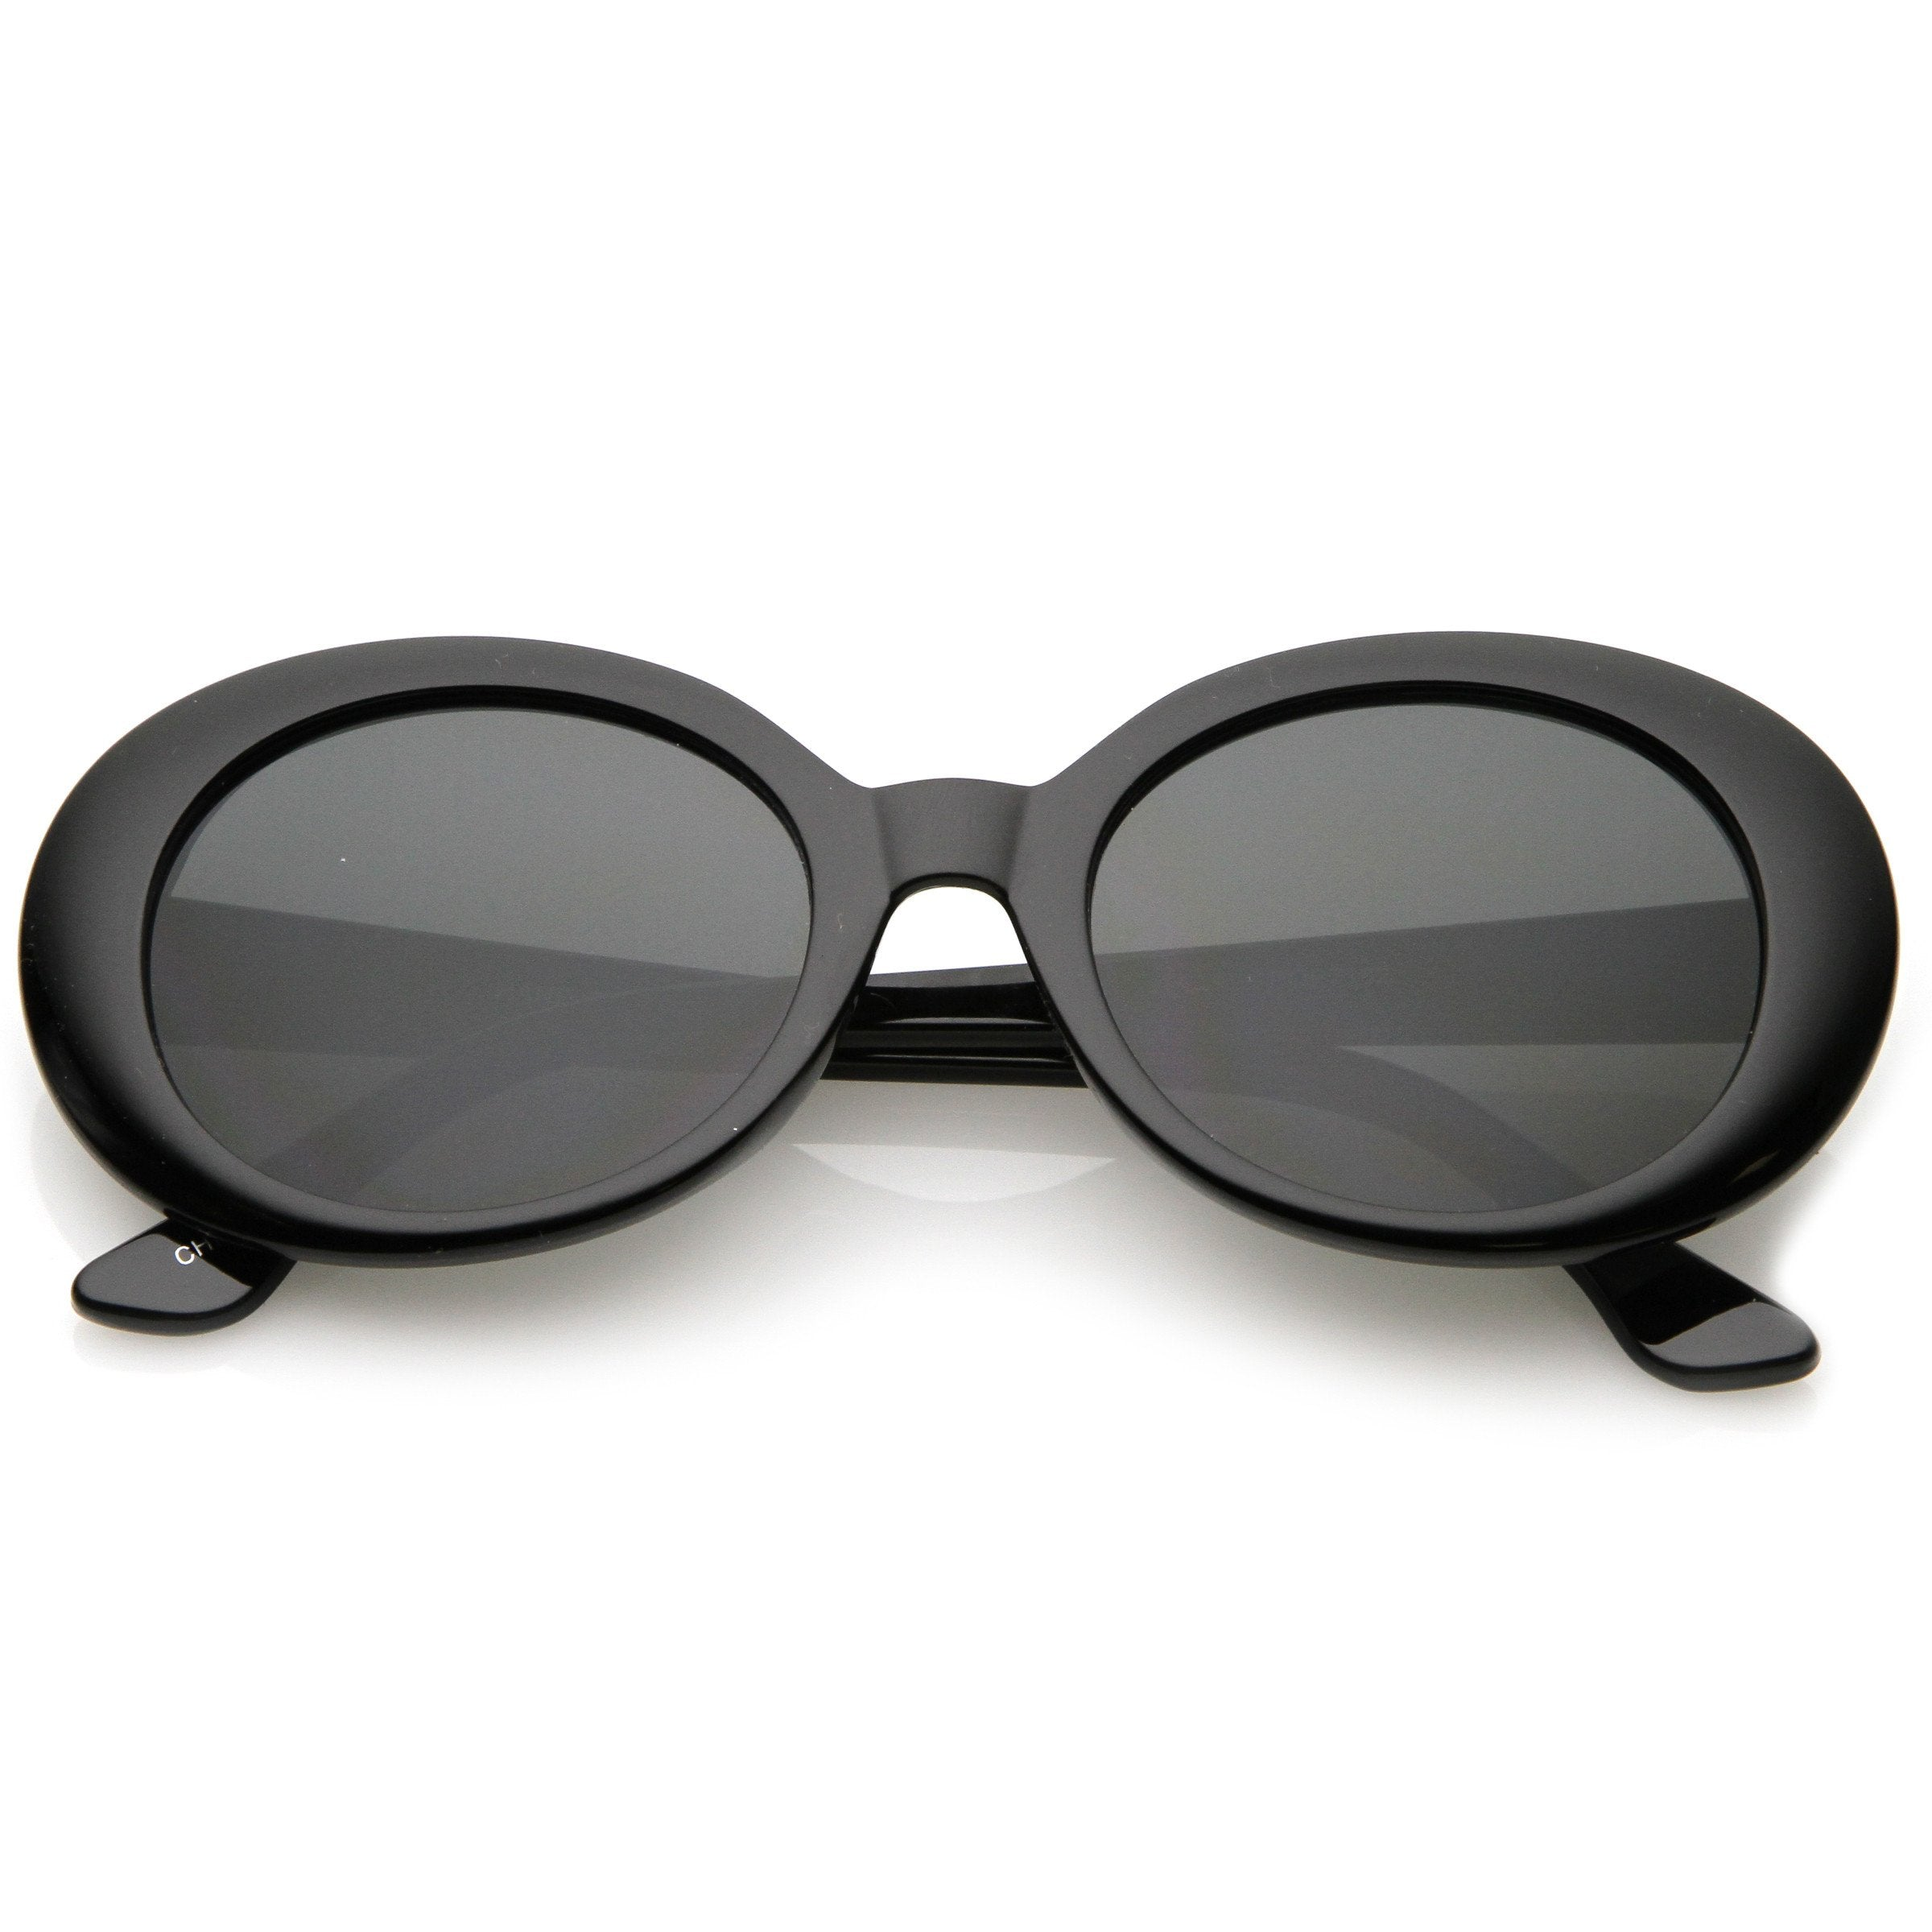 0d11918d3c Oversize Retro Tapered Arms Clout Goggle Oval Sunglasses 53mm C383 ...